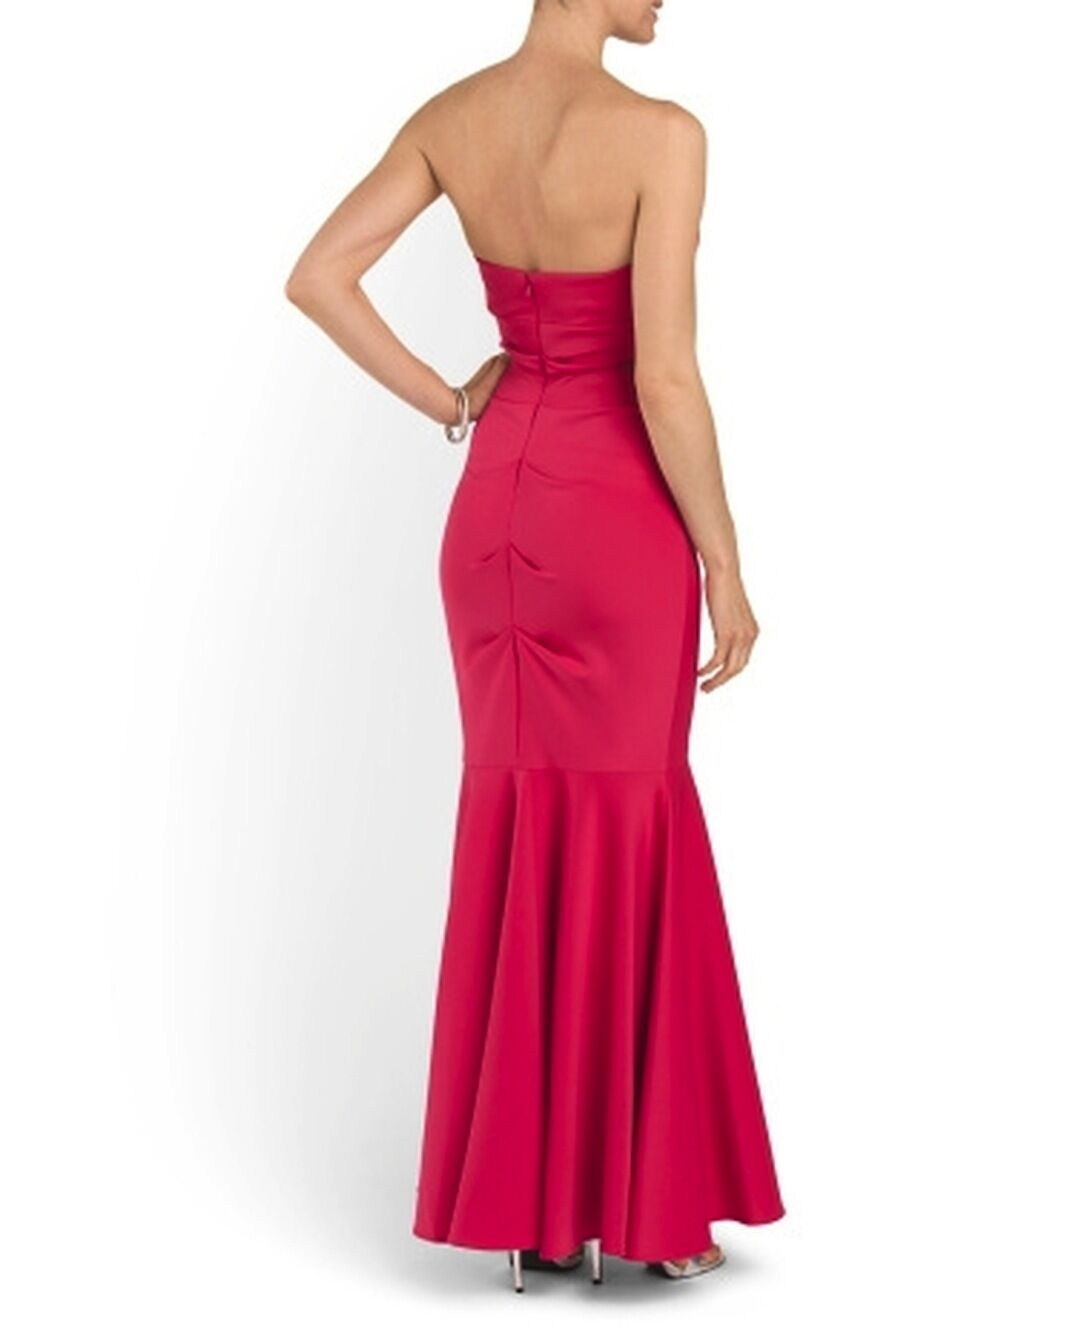 Xscape Fuschia Pink Strapless Ruched Mermaid Maxi Long Gown Xs5885c ...